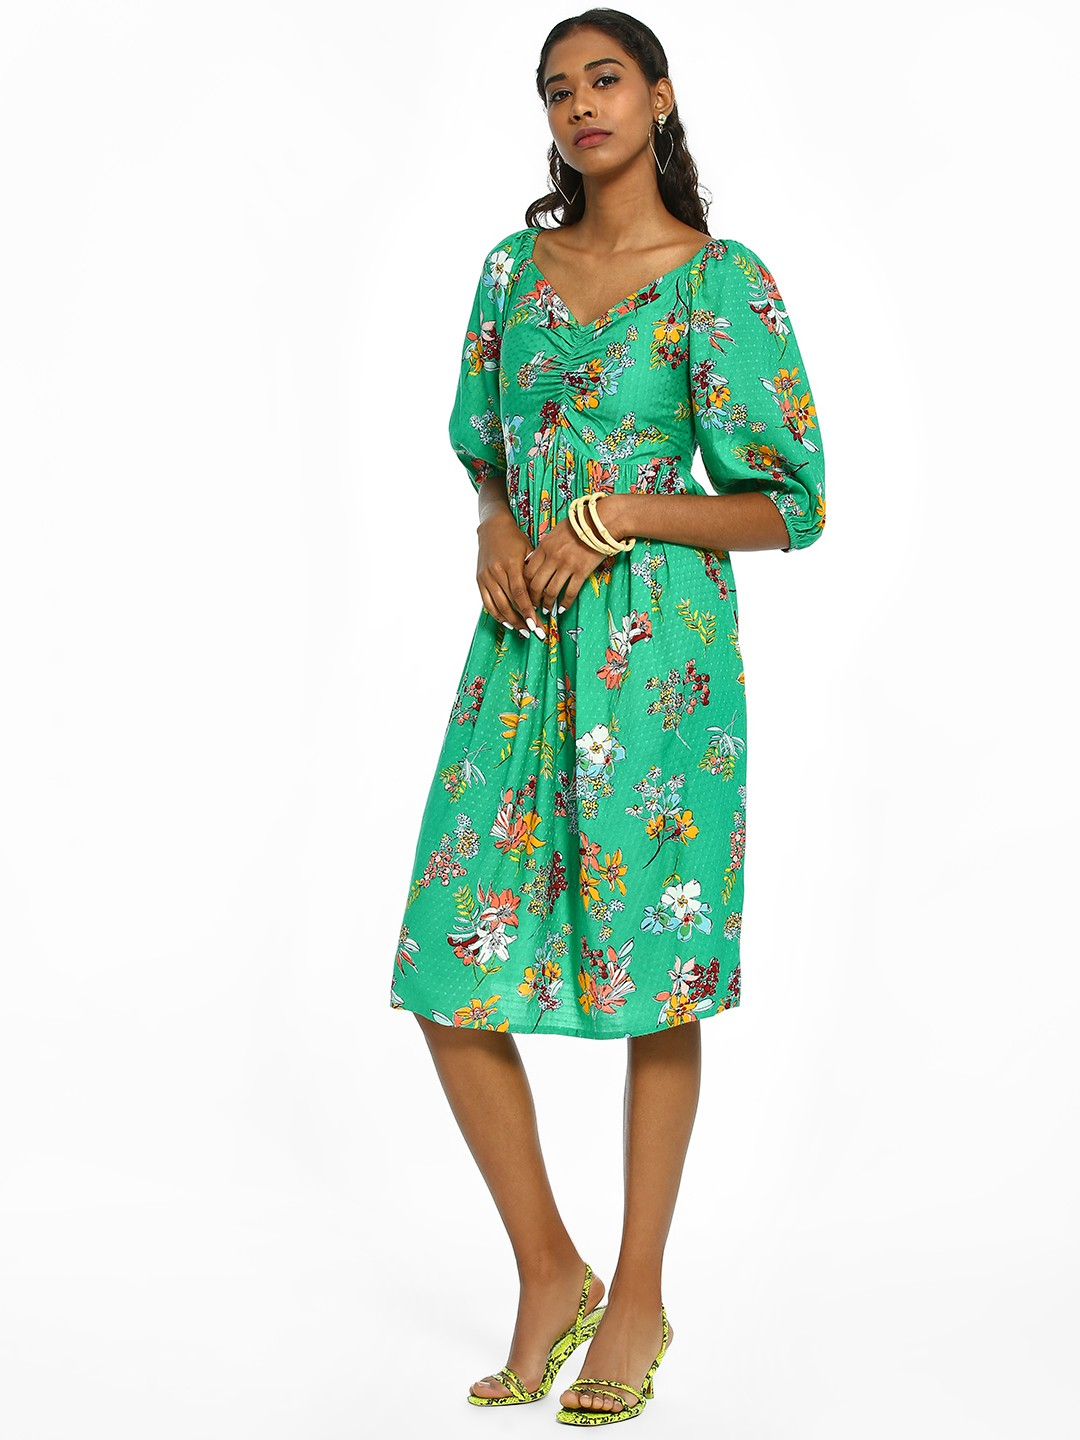 Rena Love Green Floral Print Smocked Midi Dress 1